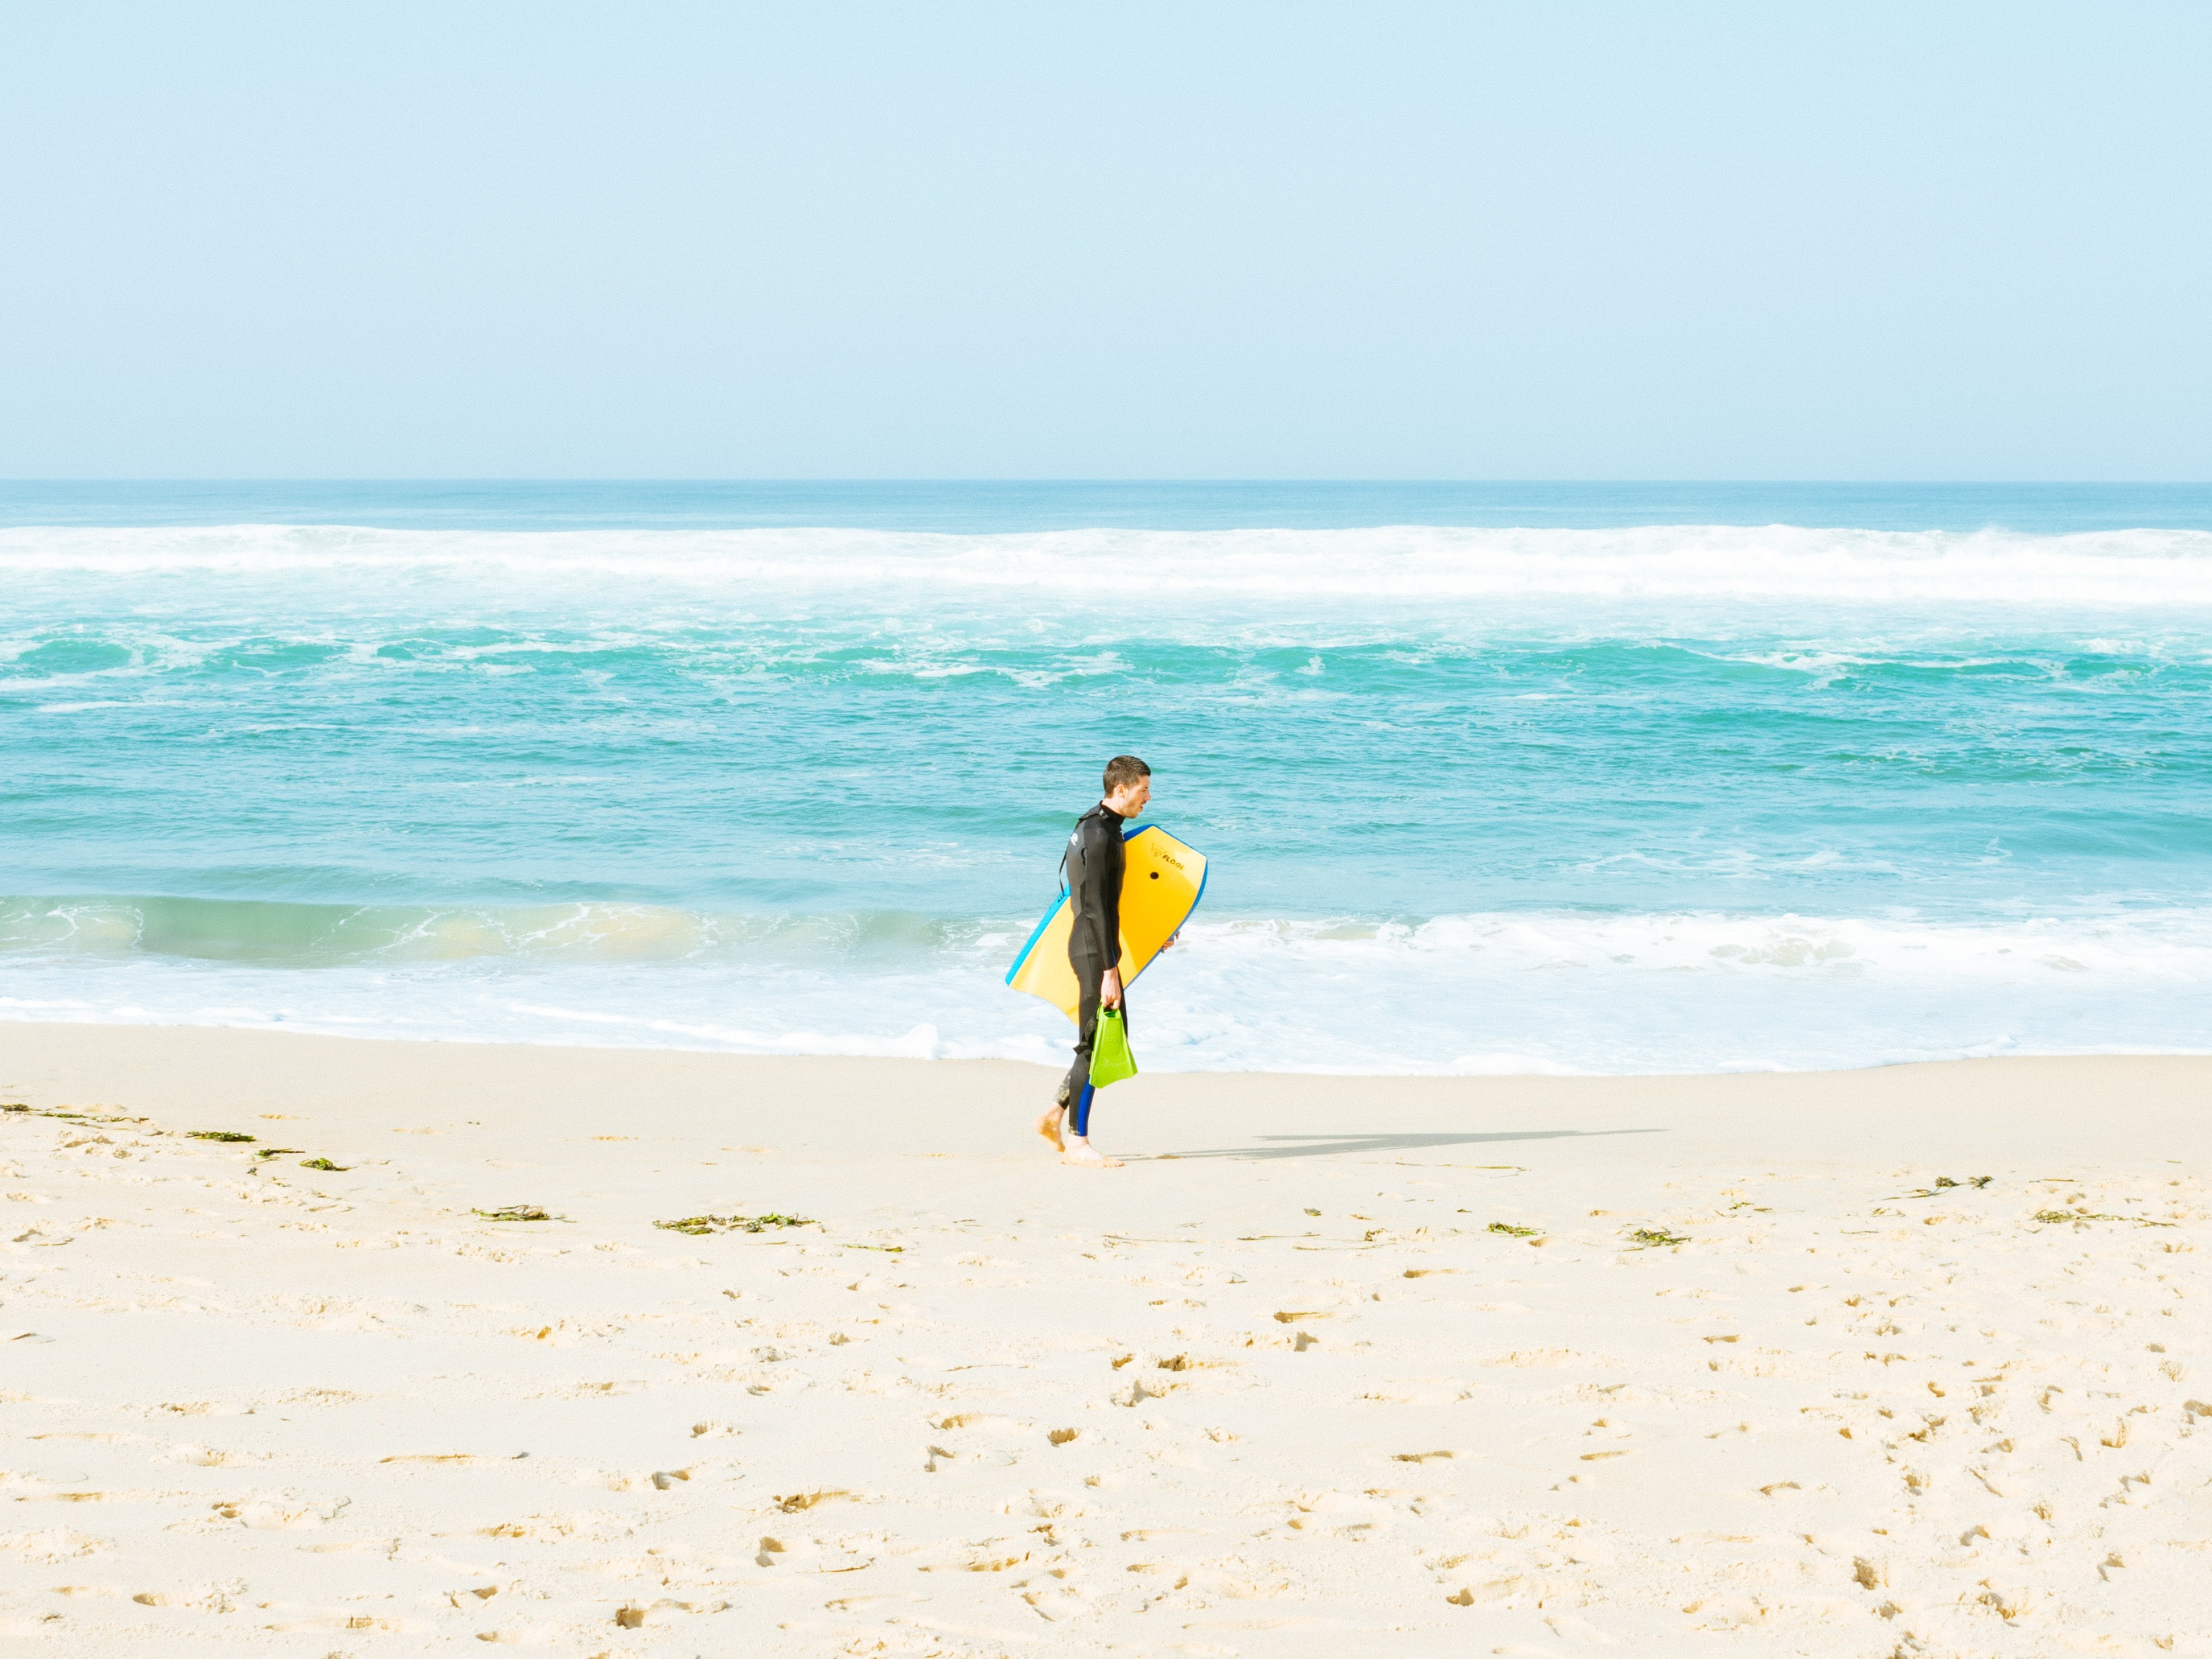 man walking on seashore holding yellow surfboard